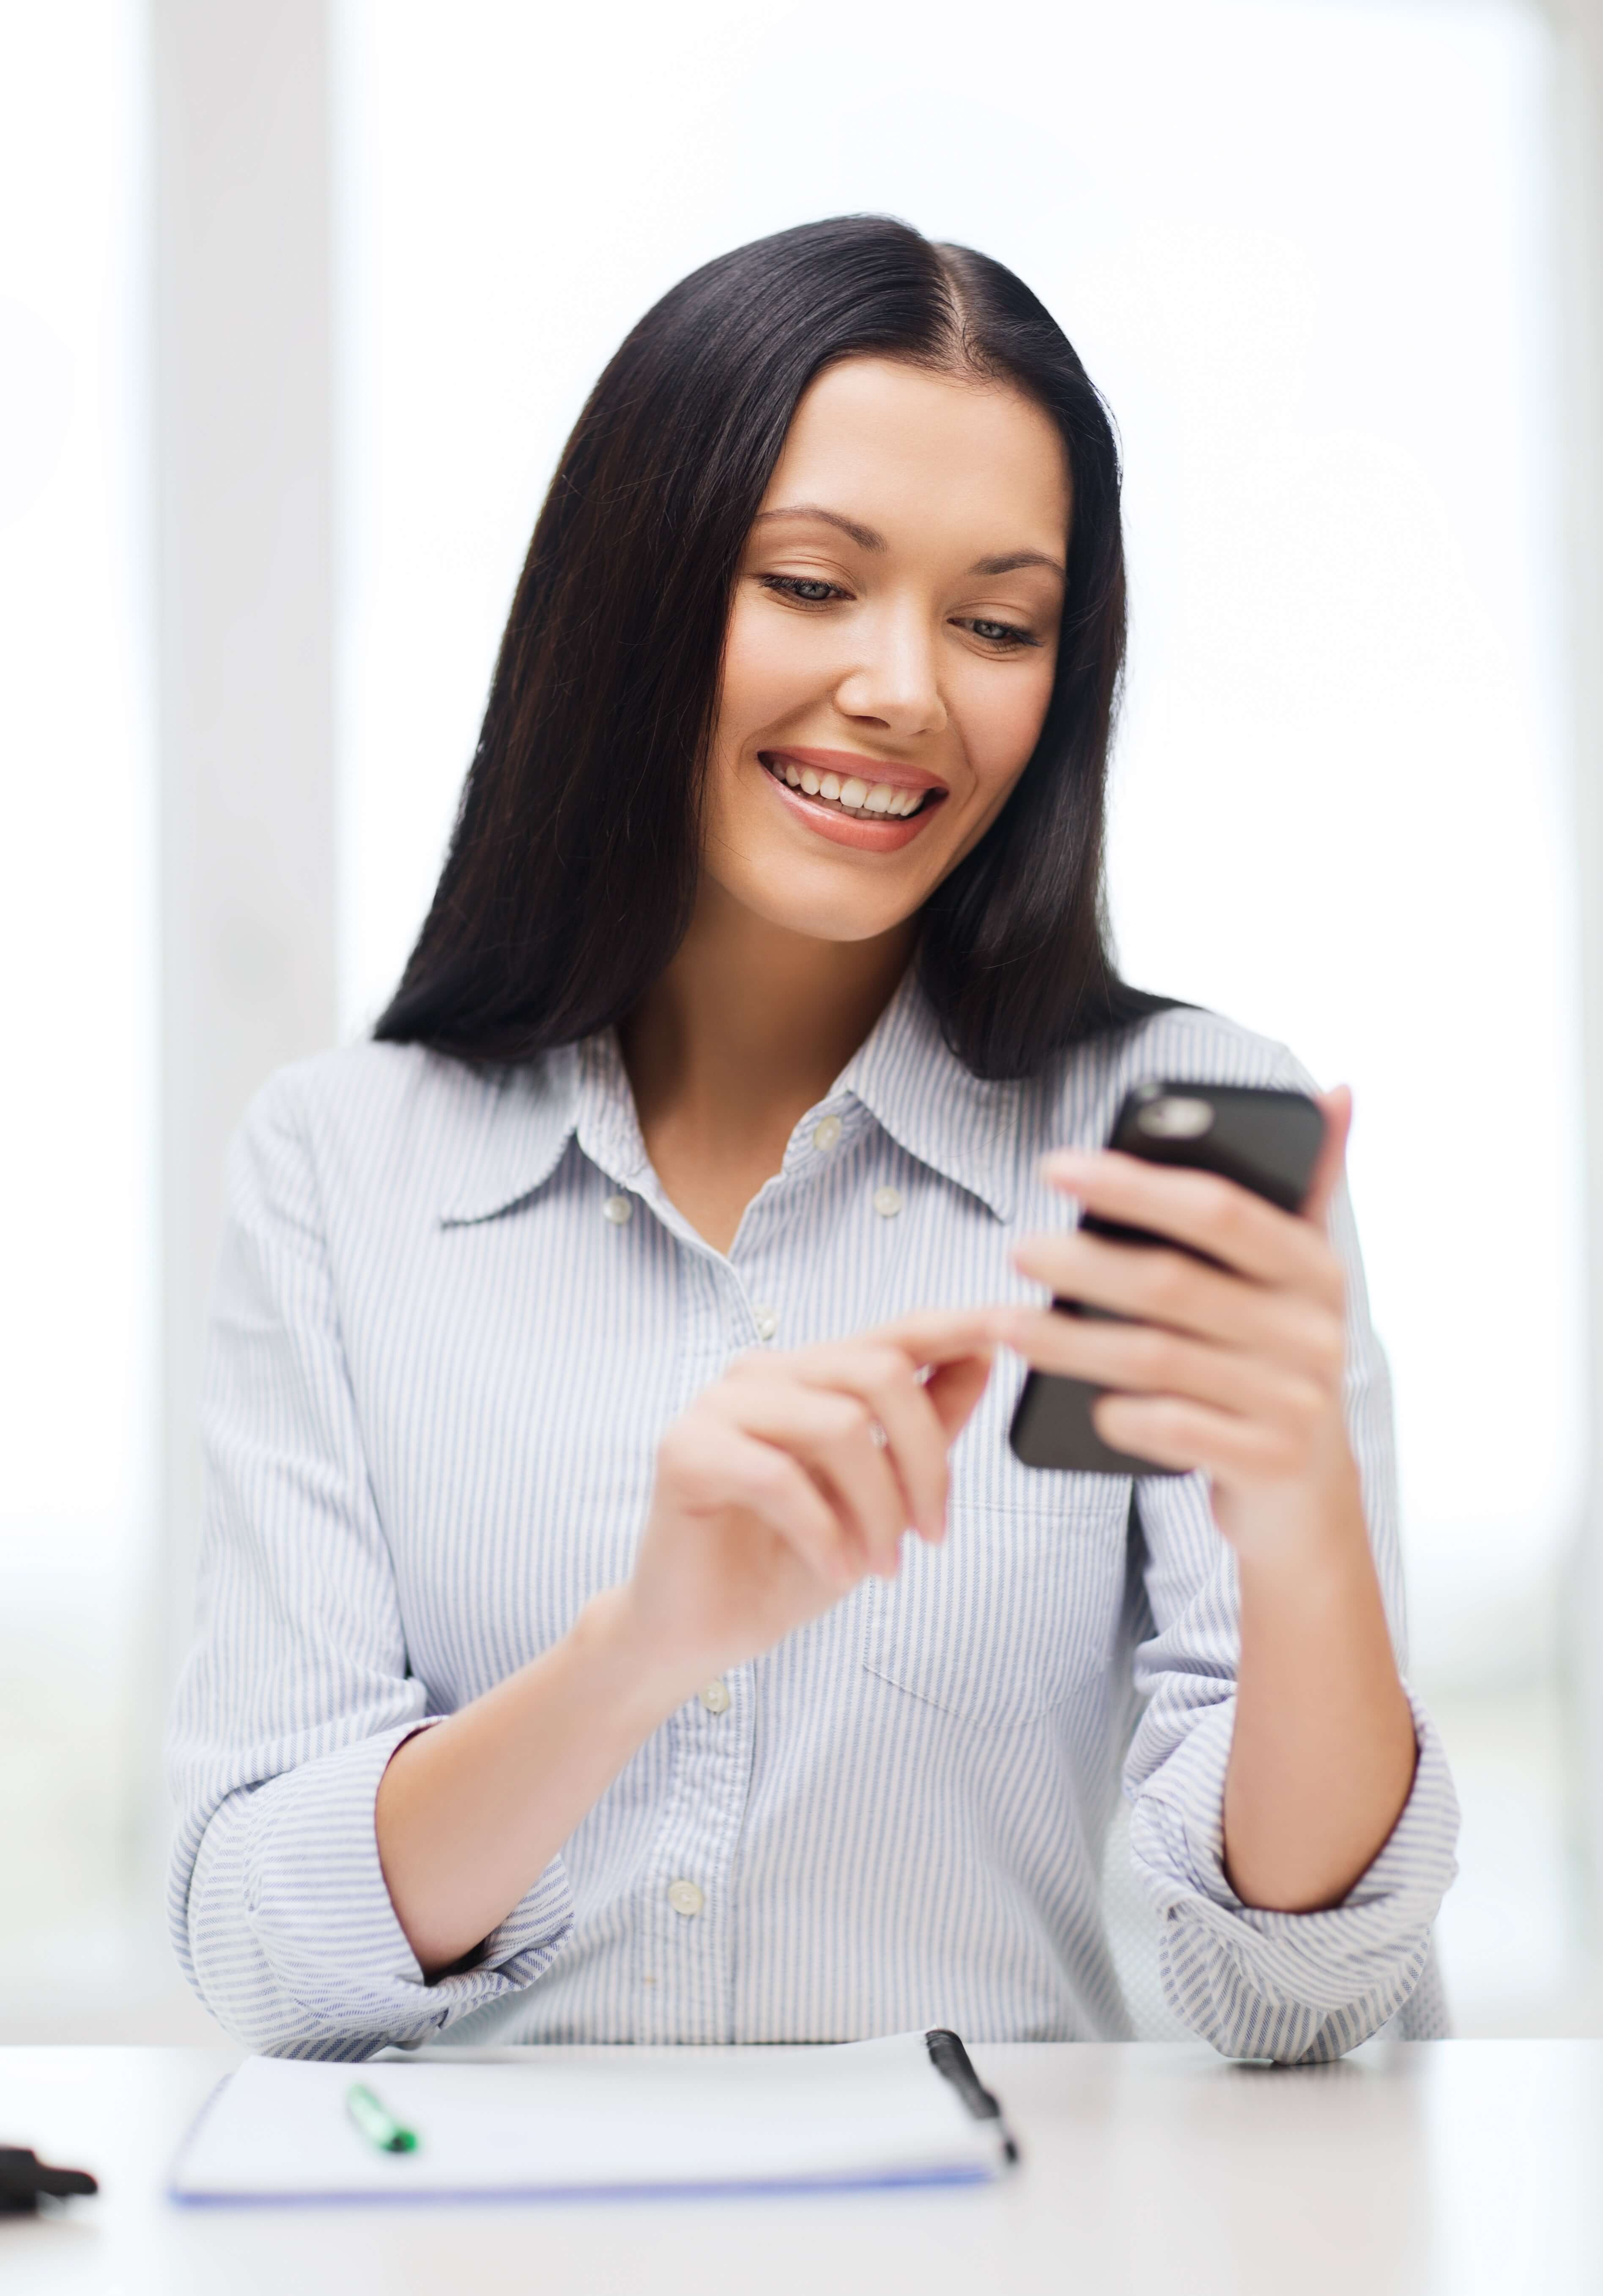 Patient texting helps get messages out quickly